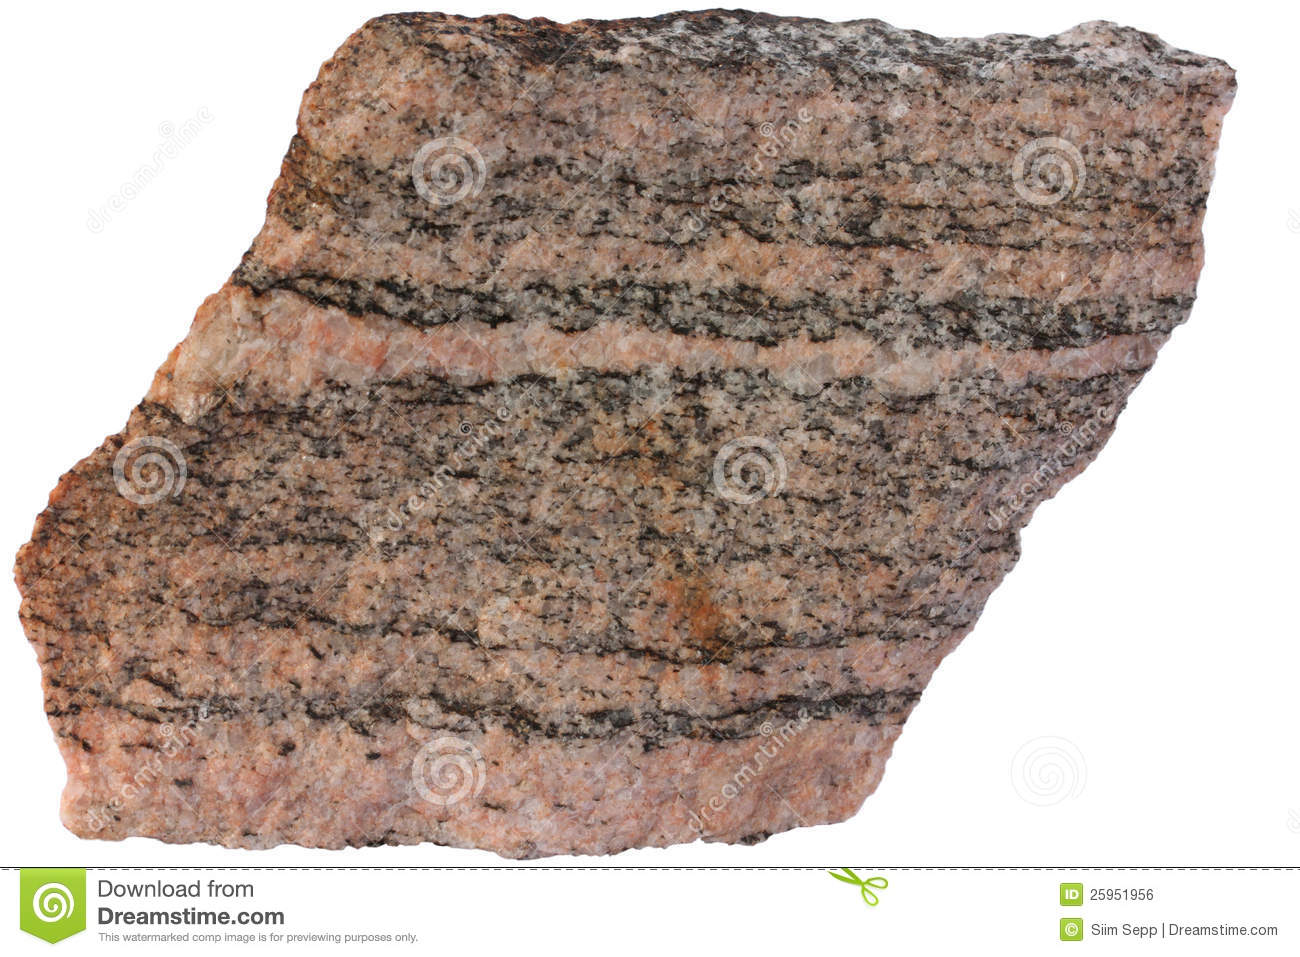 Banded Metamorphic Rock Gneiss From Karelia Stock Photo ...